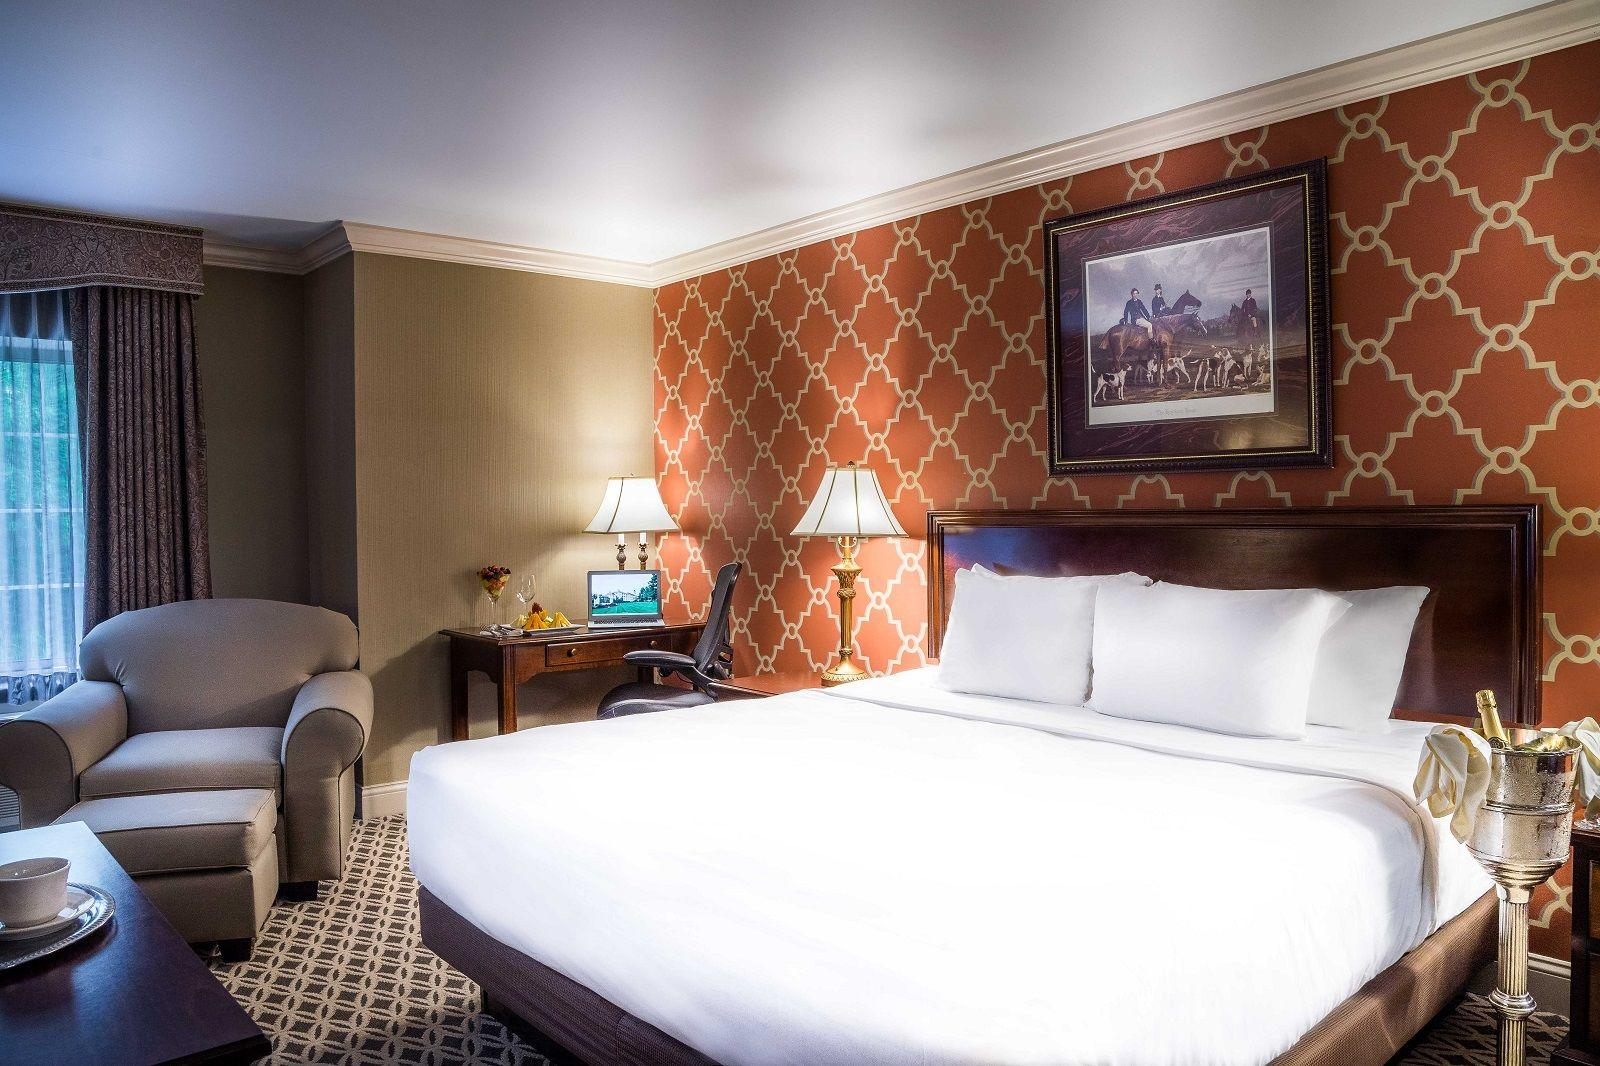 Hotel room with king-sized bed